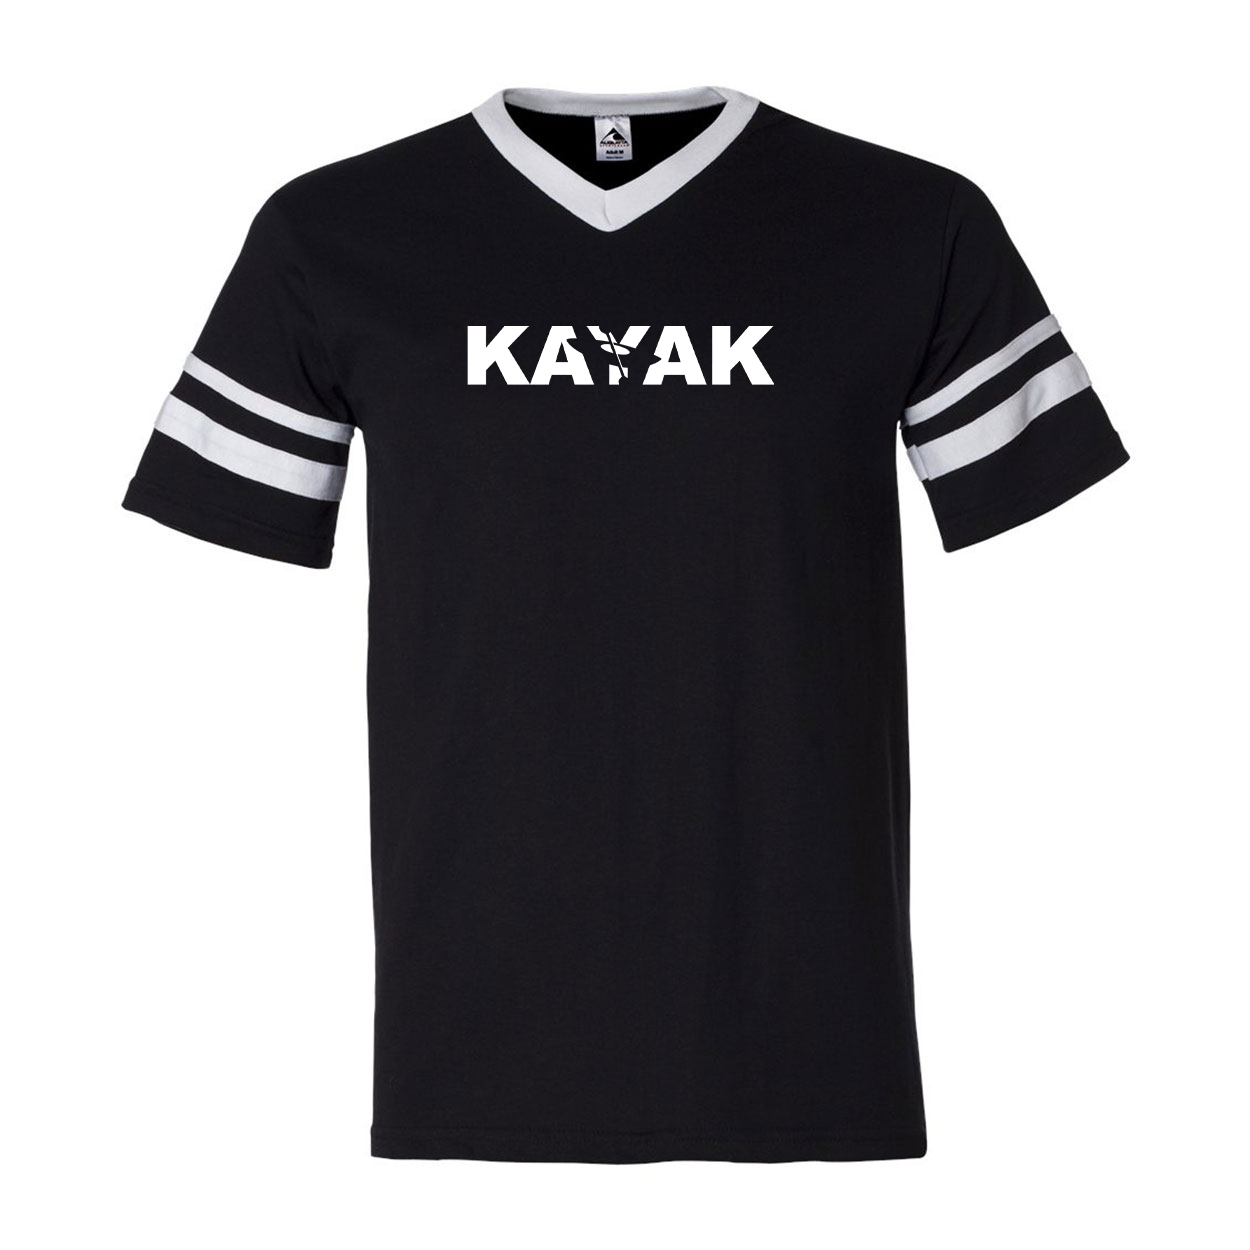 Kayak Hull Logo Classic Premium Striped Jersey T-Shirt Black/White (White Logo)